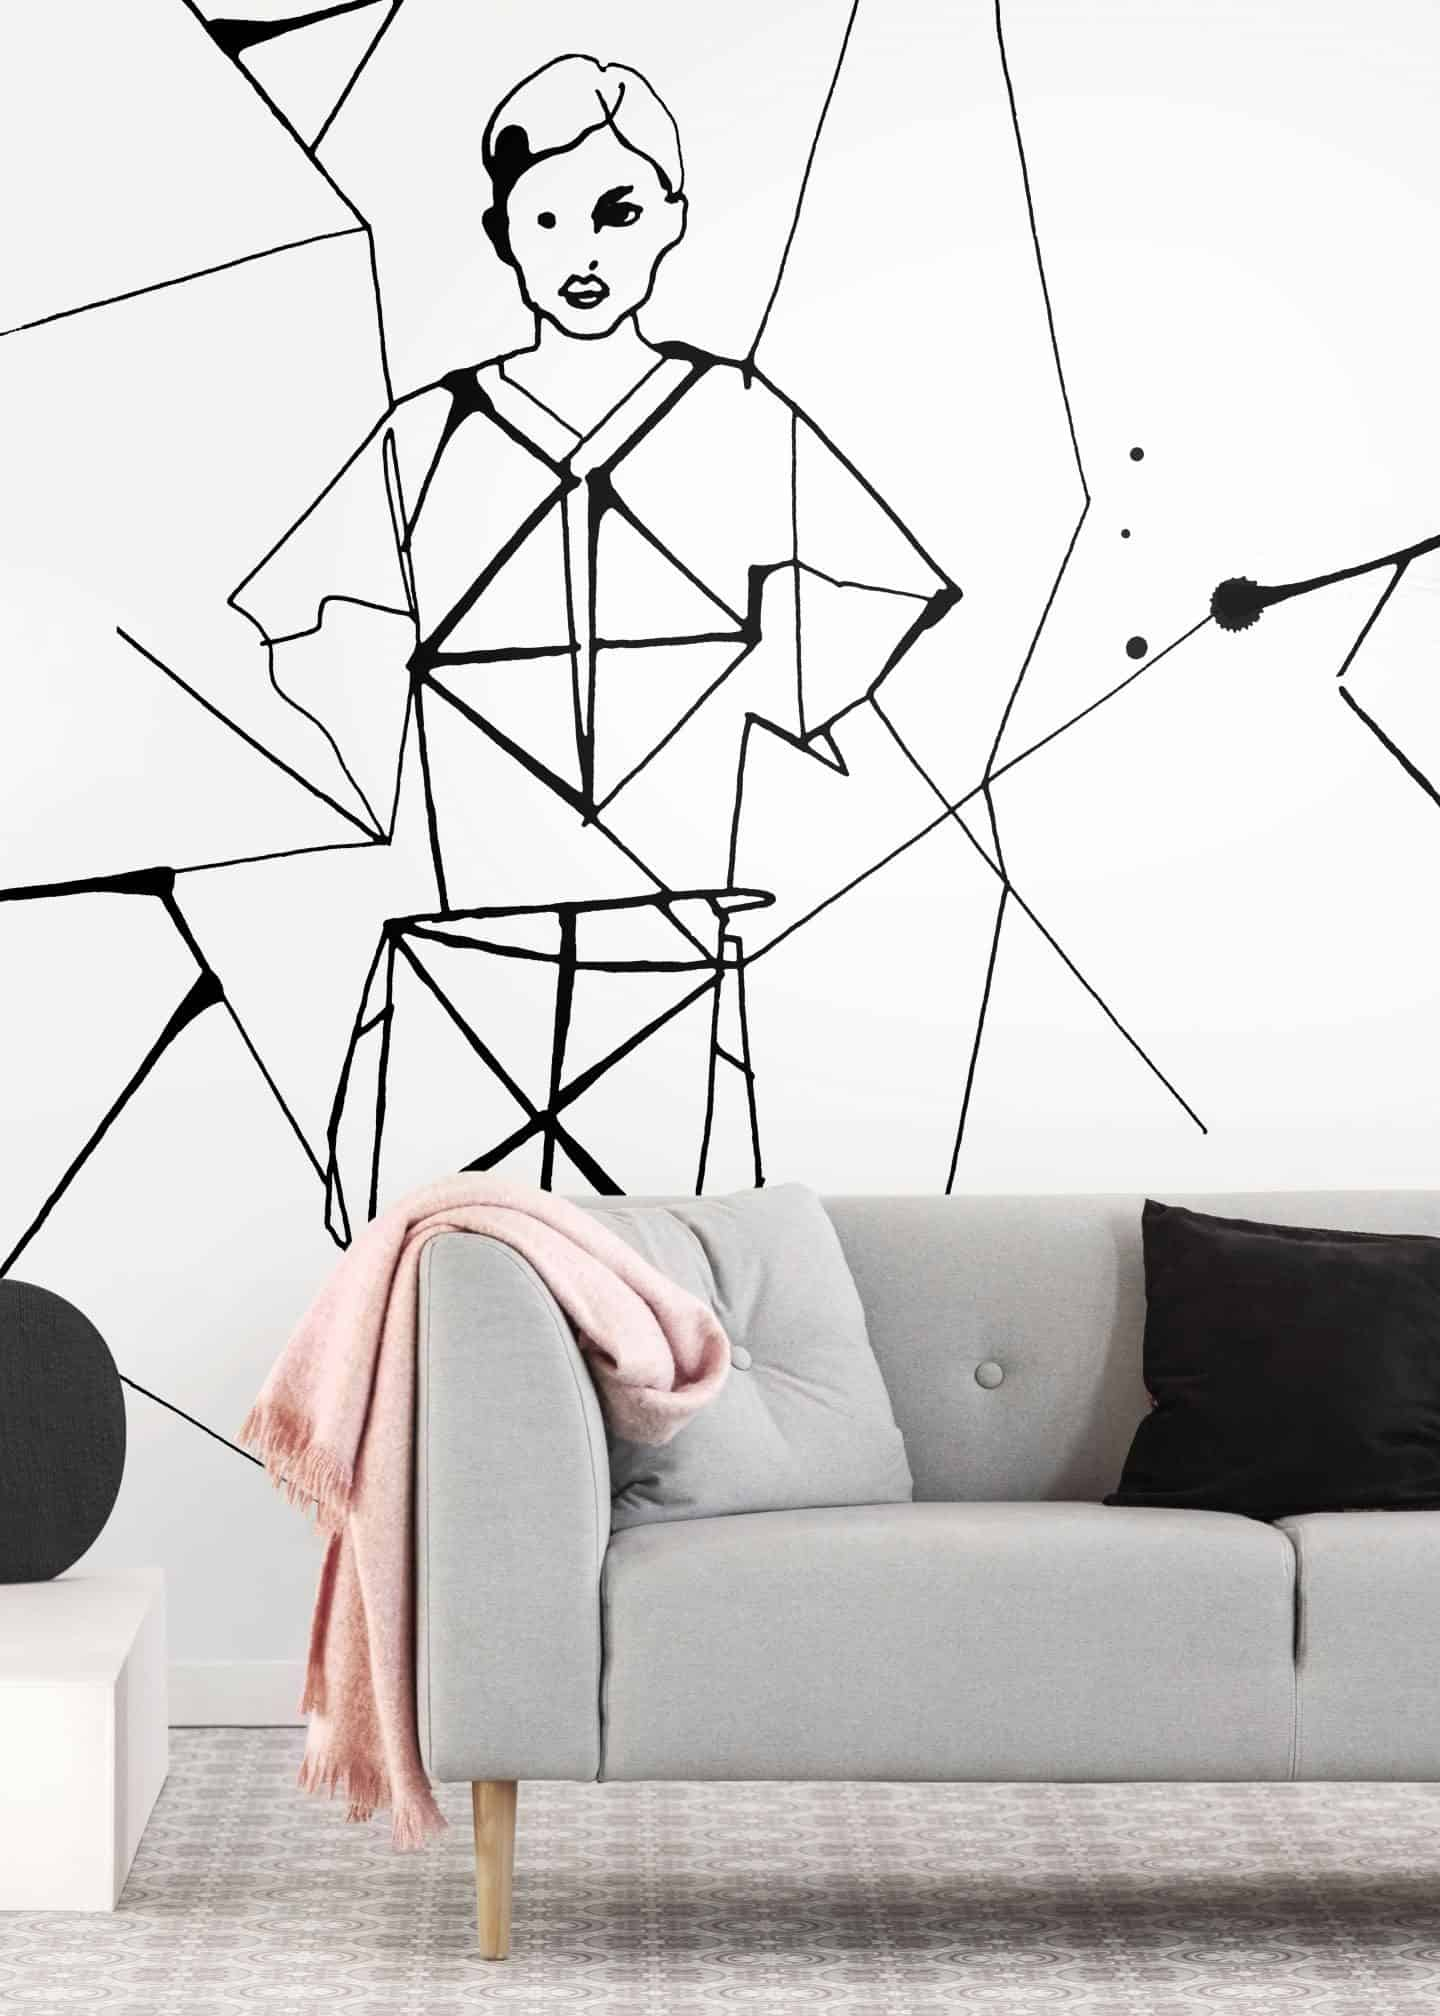 {Pleated Beauty, a black and white fashion illustration by Stina Wirsén available as a illustrated wallpaper from Photowall.